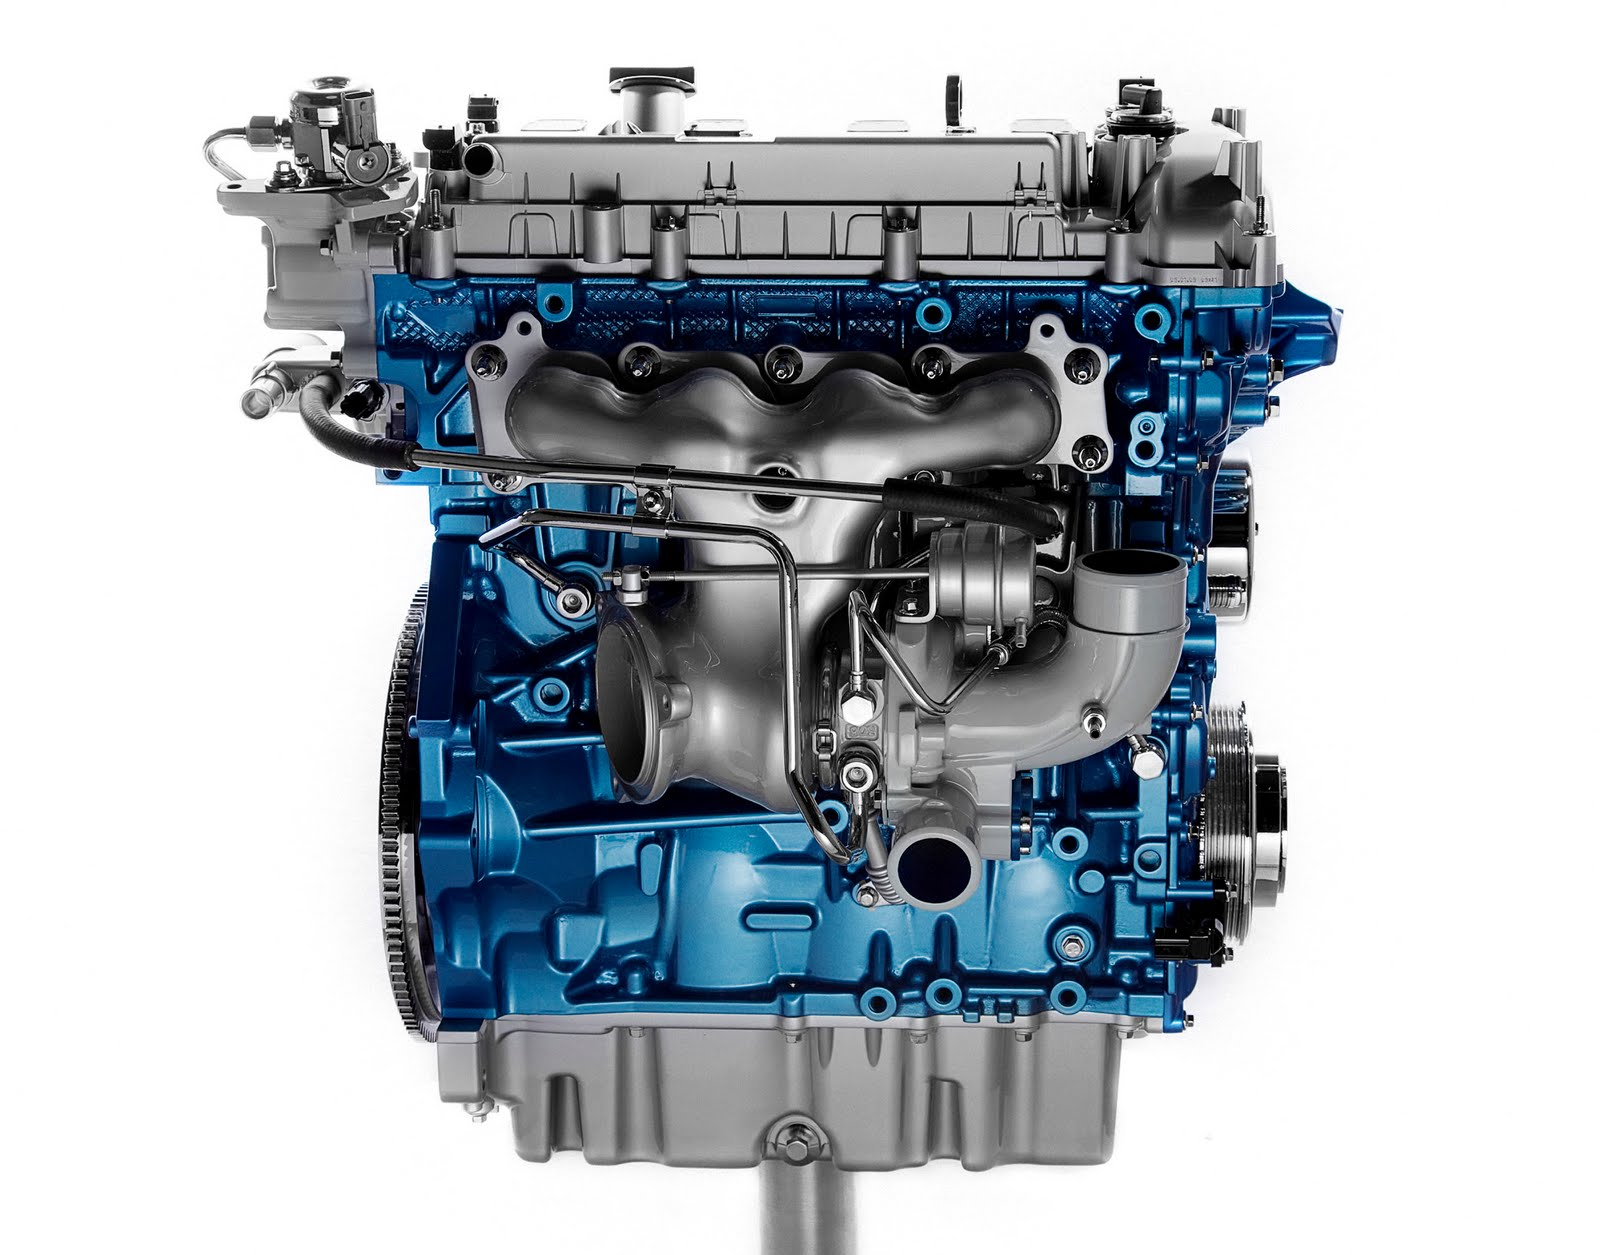 ecoboost ford engines engine cylinder 0l turbo 6l horsepower exhaust escape i4 focus boost eco st four hp rated vacuum